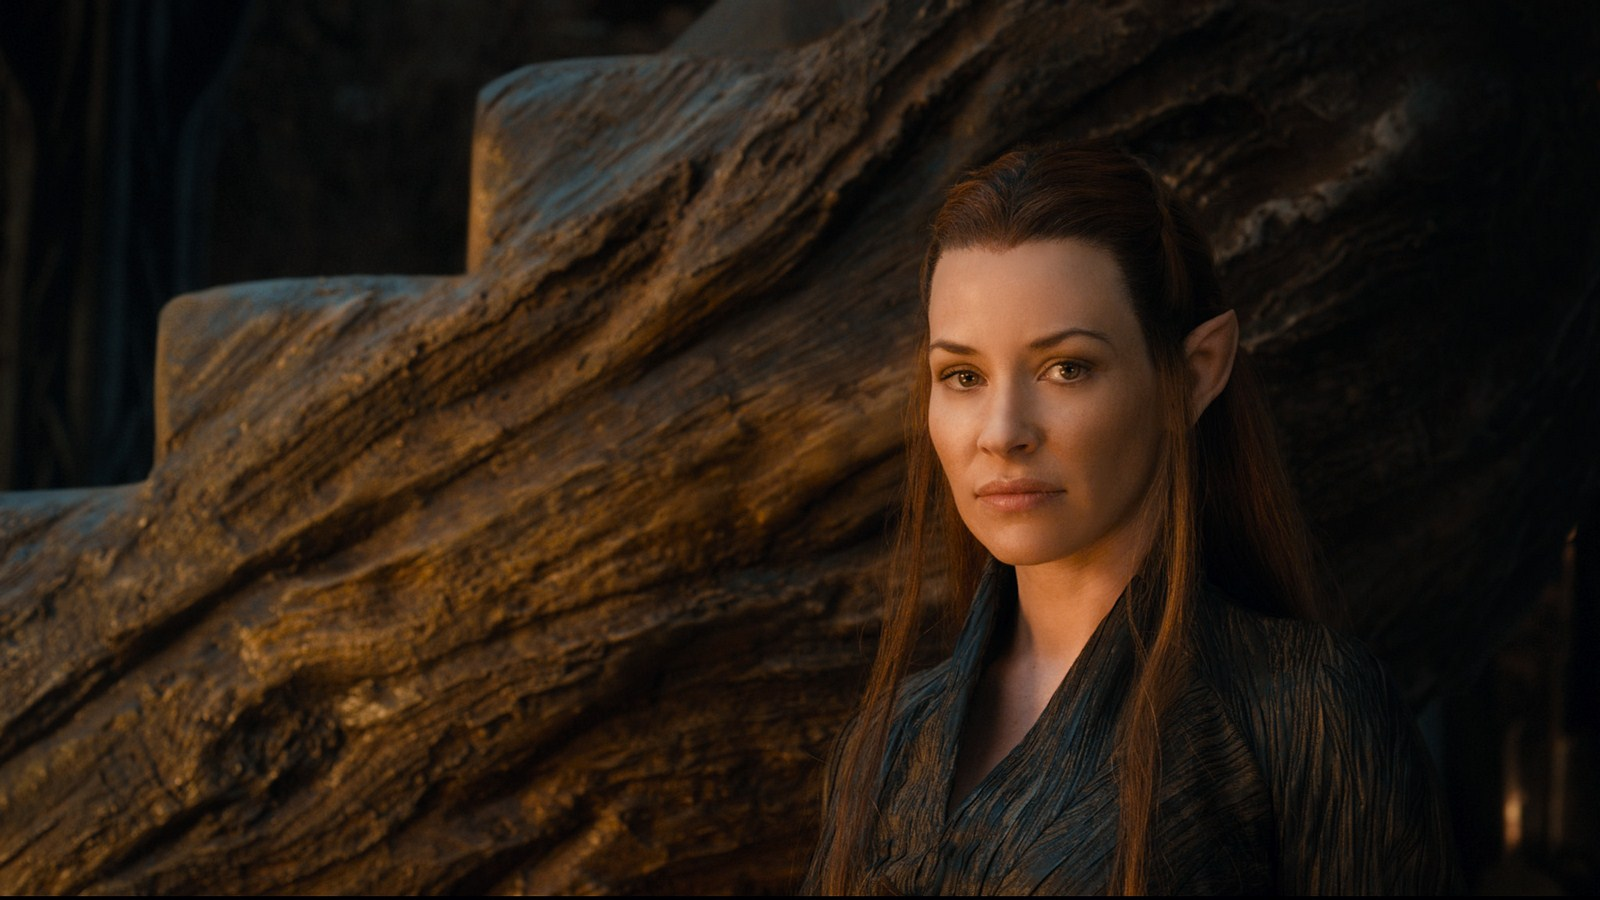 2015 By Stephen Comments Off on Evangeline Lilly The Hobbit Wallpapers 1600x900